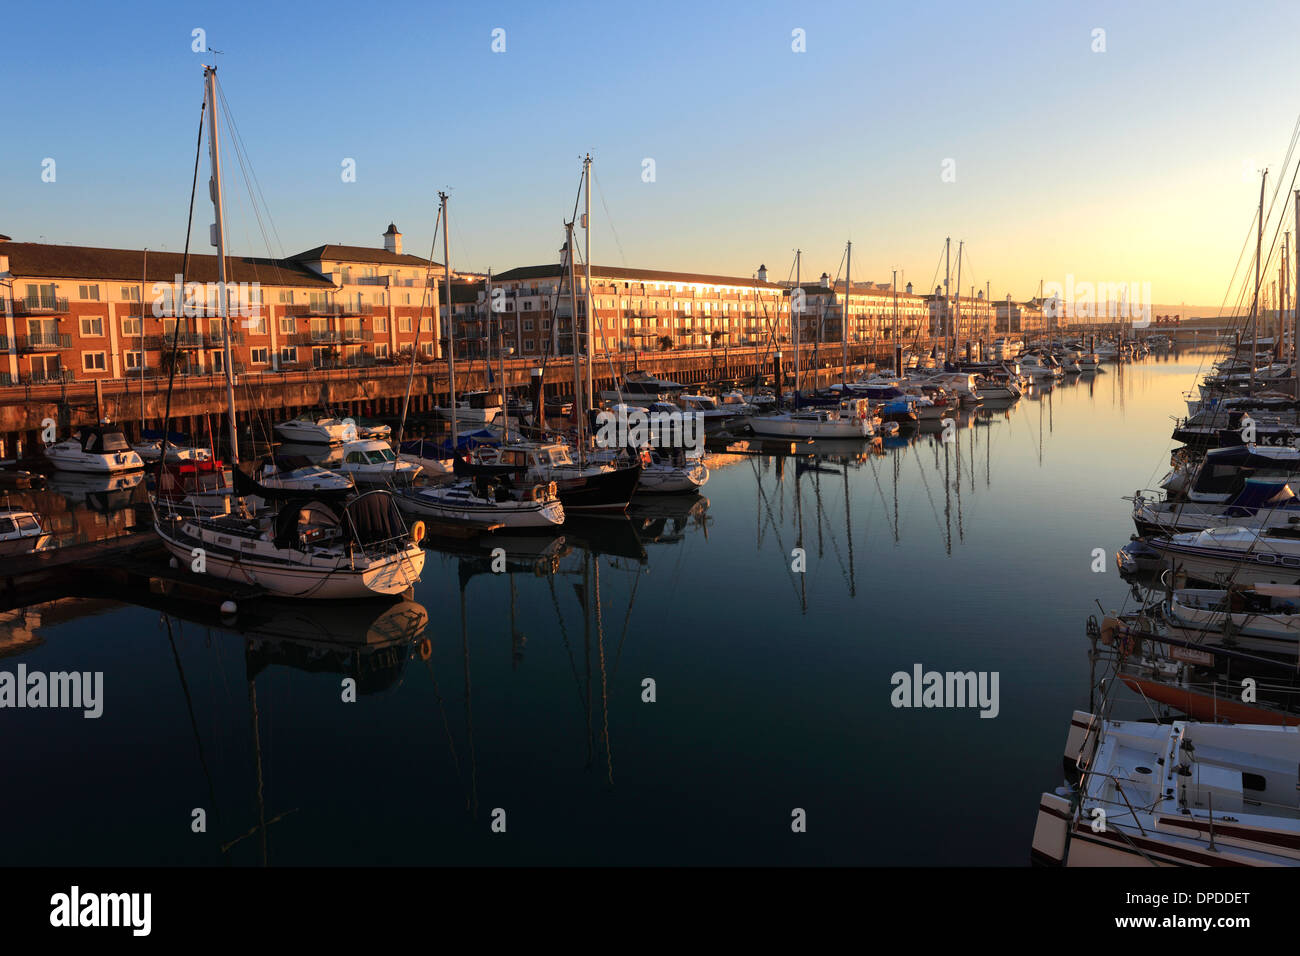 Dawn, boats and houses in Brighton Marina, Brighton & Hove, Sussex County, England, UK - Stock Image